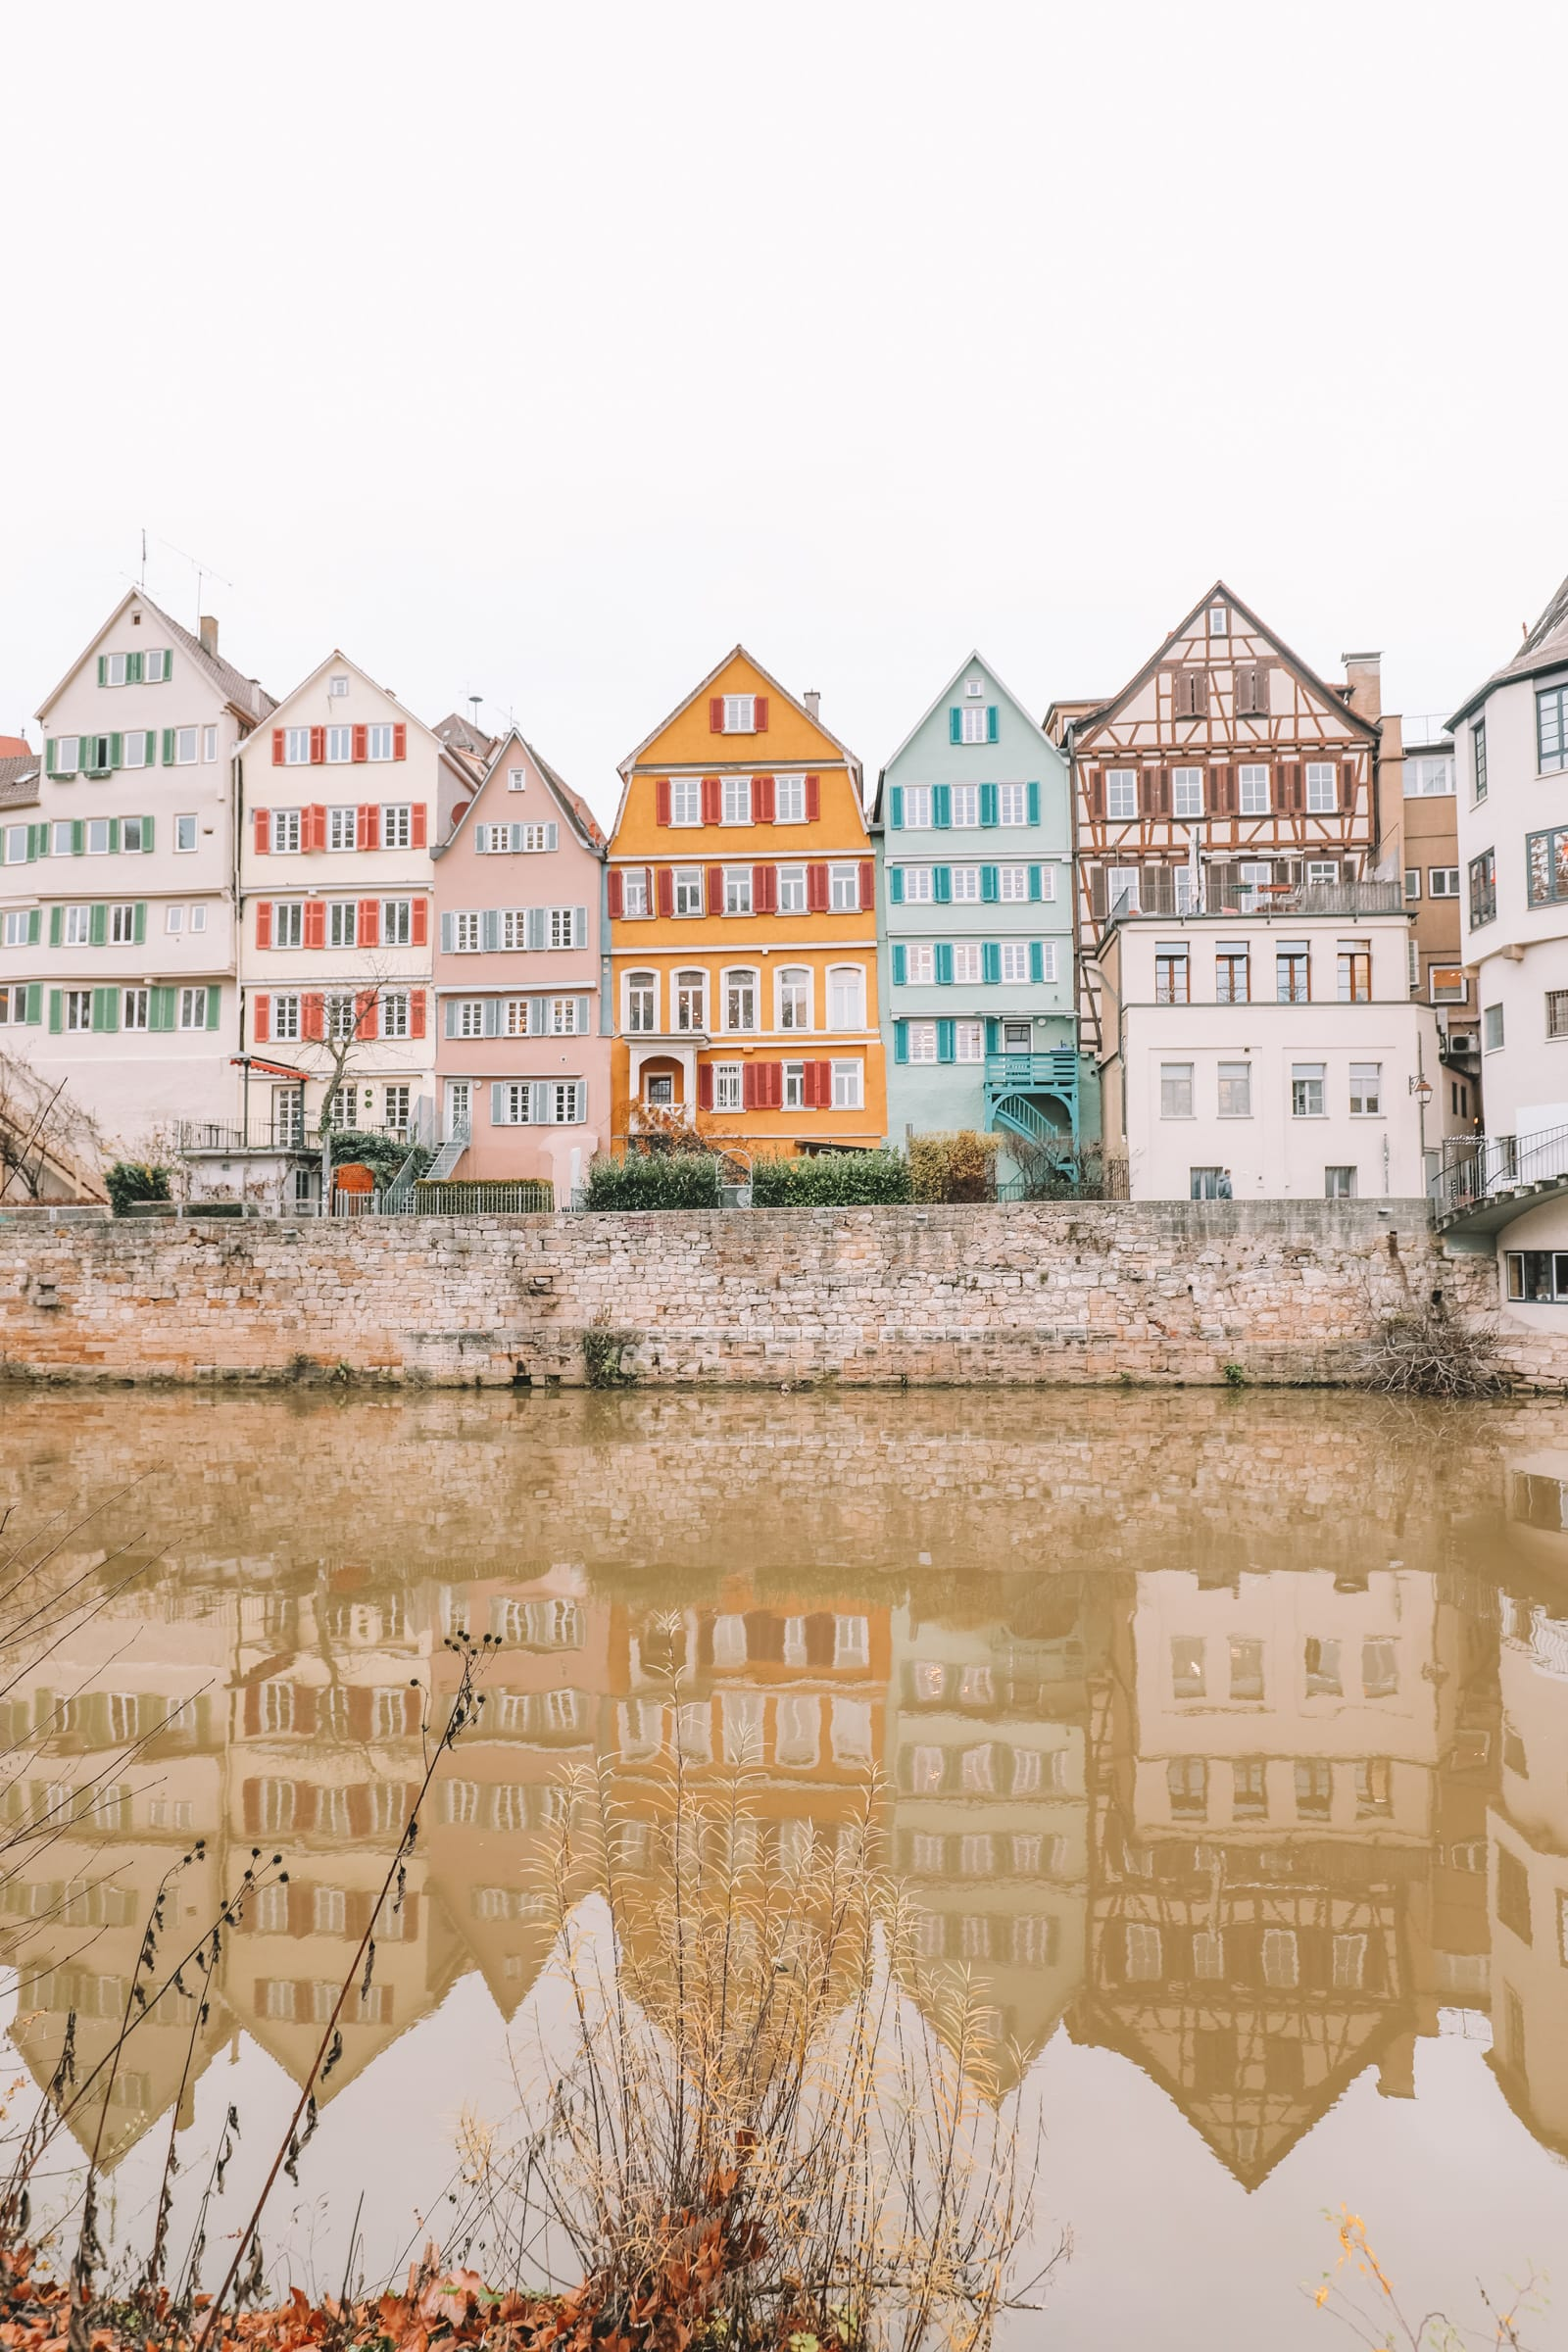 The Colourful Ancient City Of Tubingen, Germany (56)